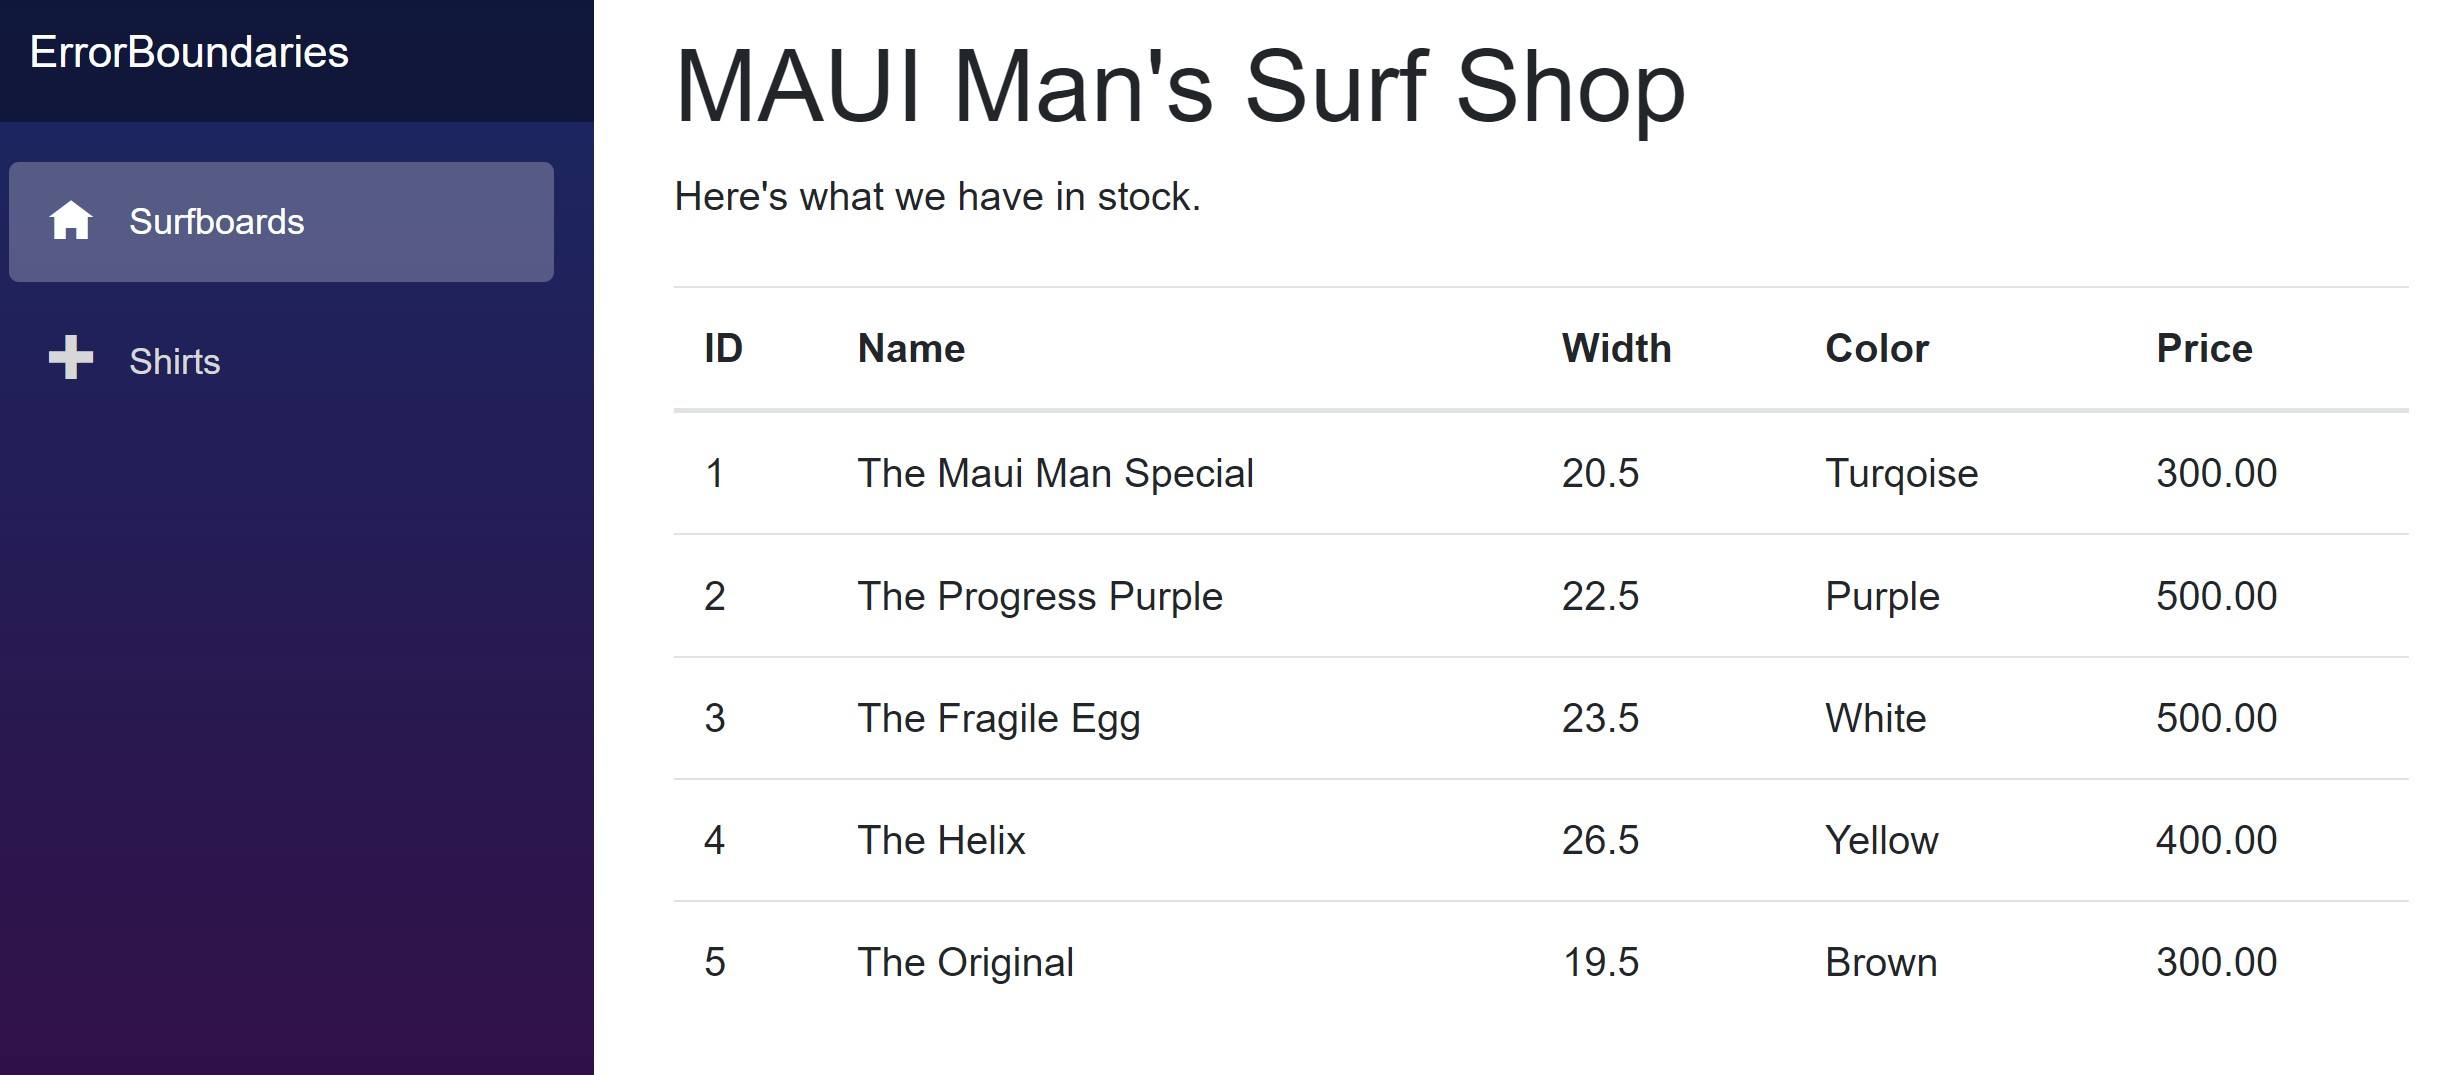 The MAUI Man Surf Shop says, 'Here's what we have in stock,' with a list of surfboards, including ID number, name, width, color and price.